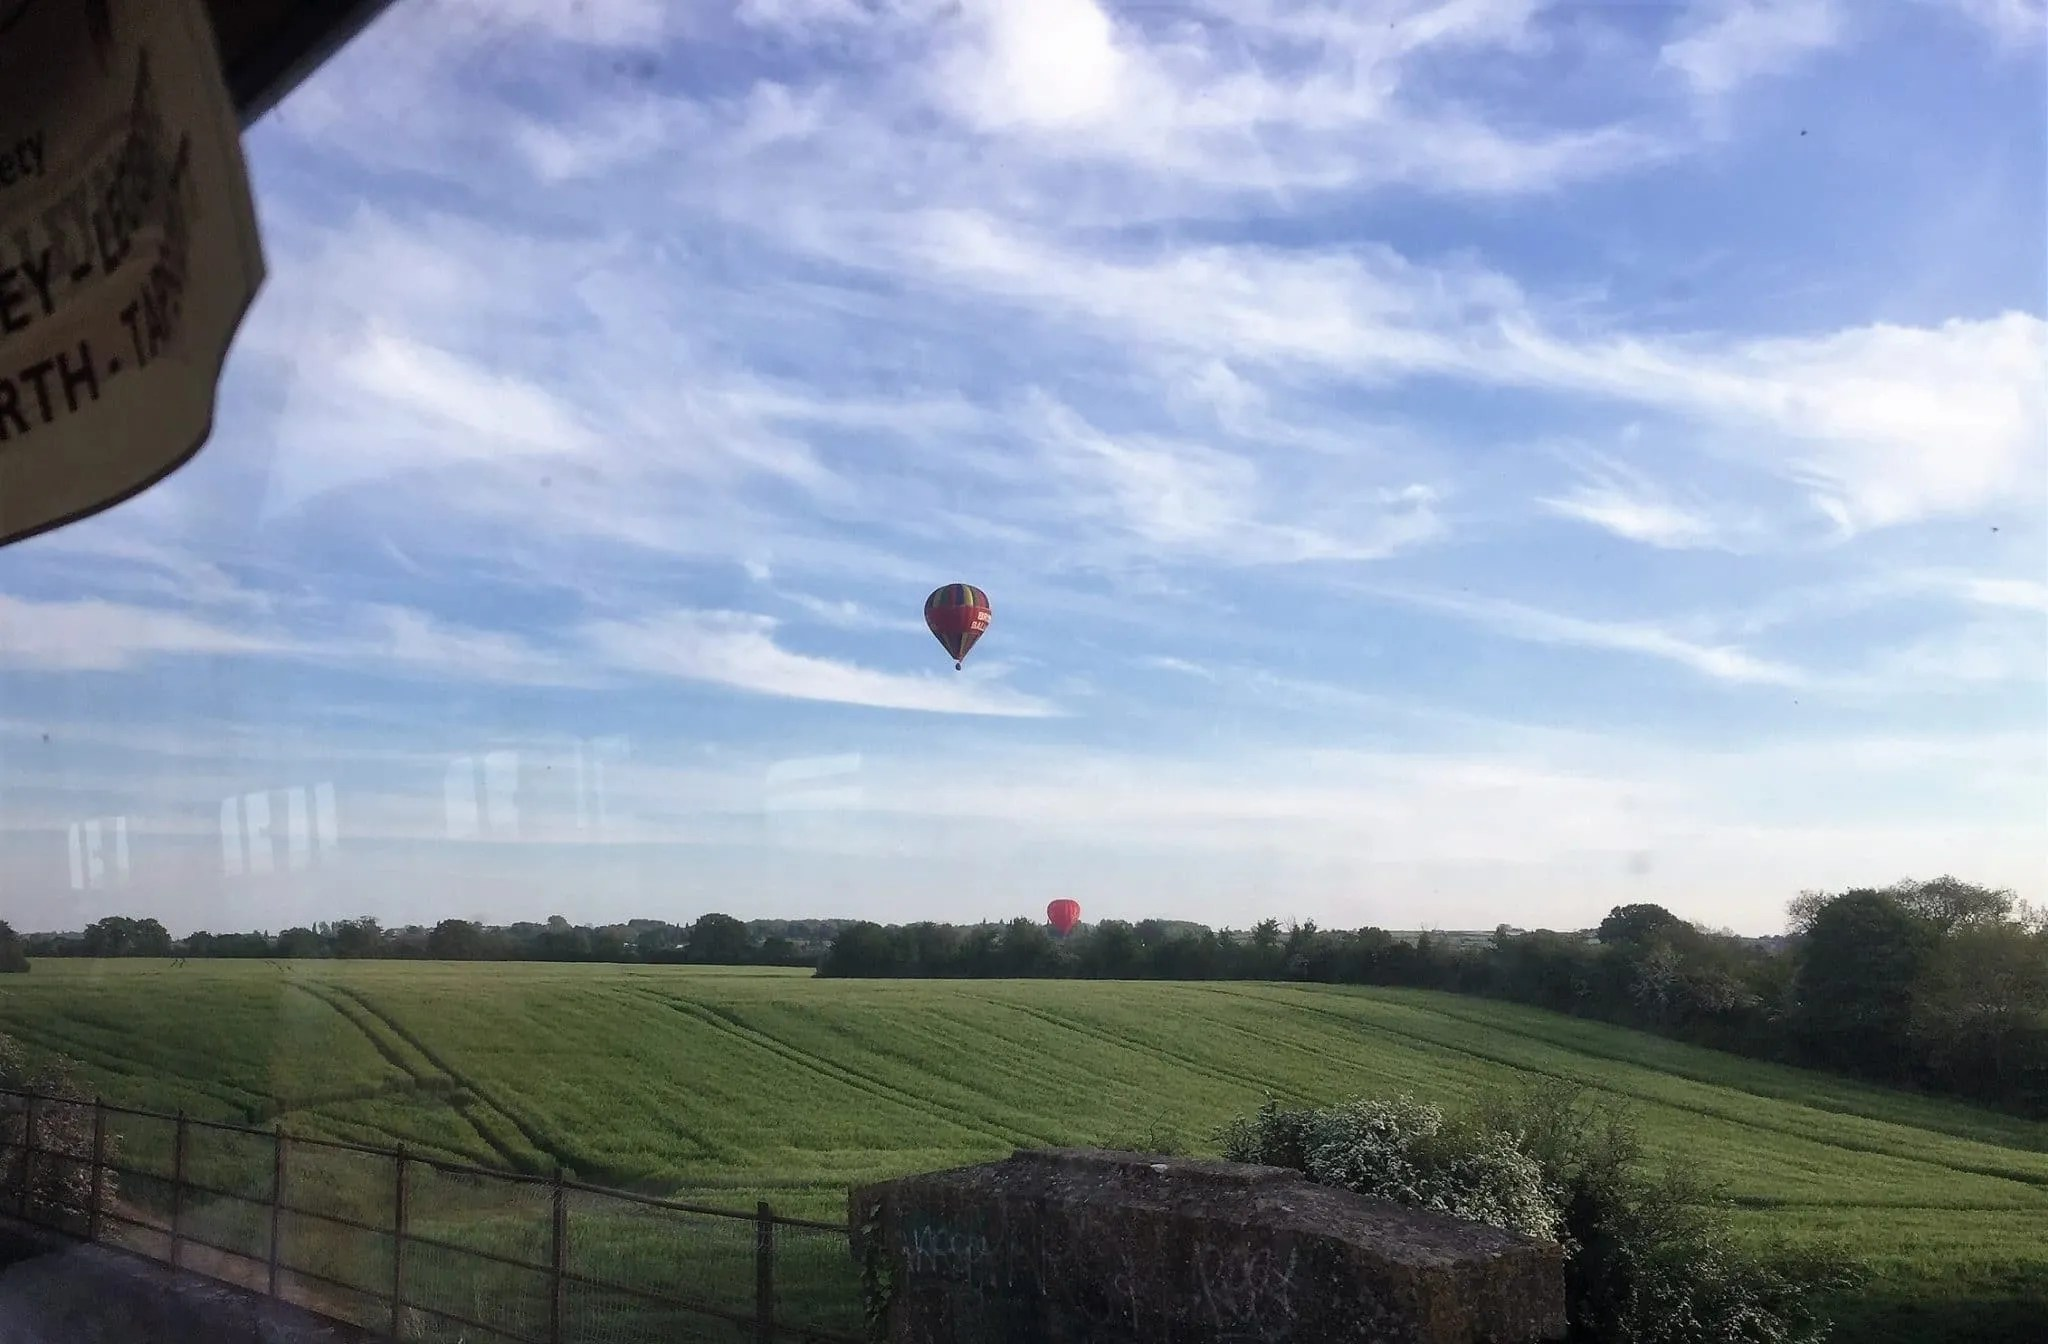 View from the Avon Valley Railway of hot air balloons